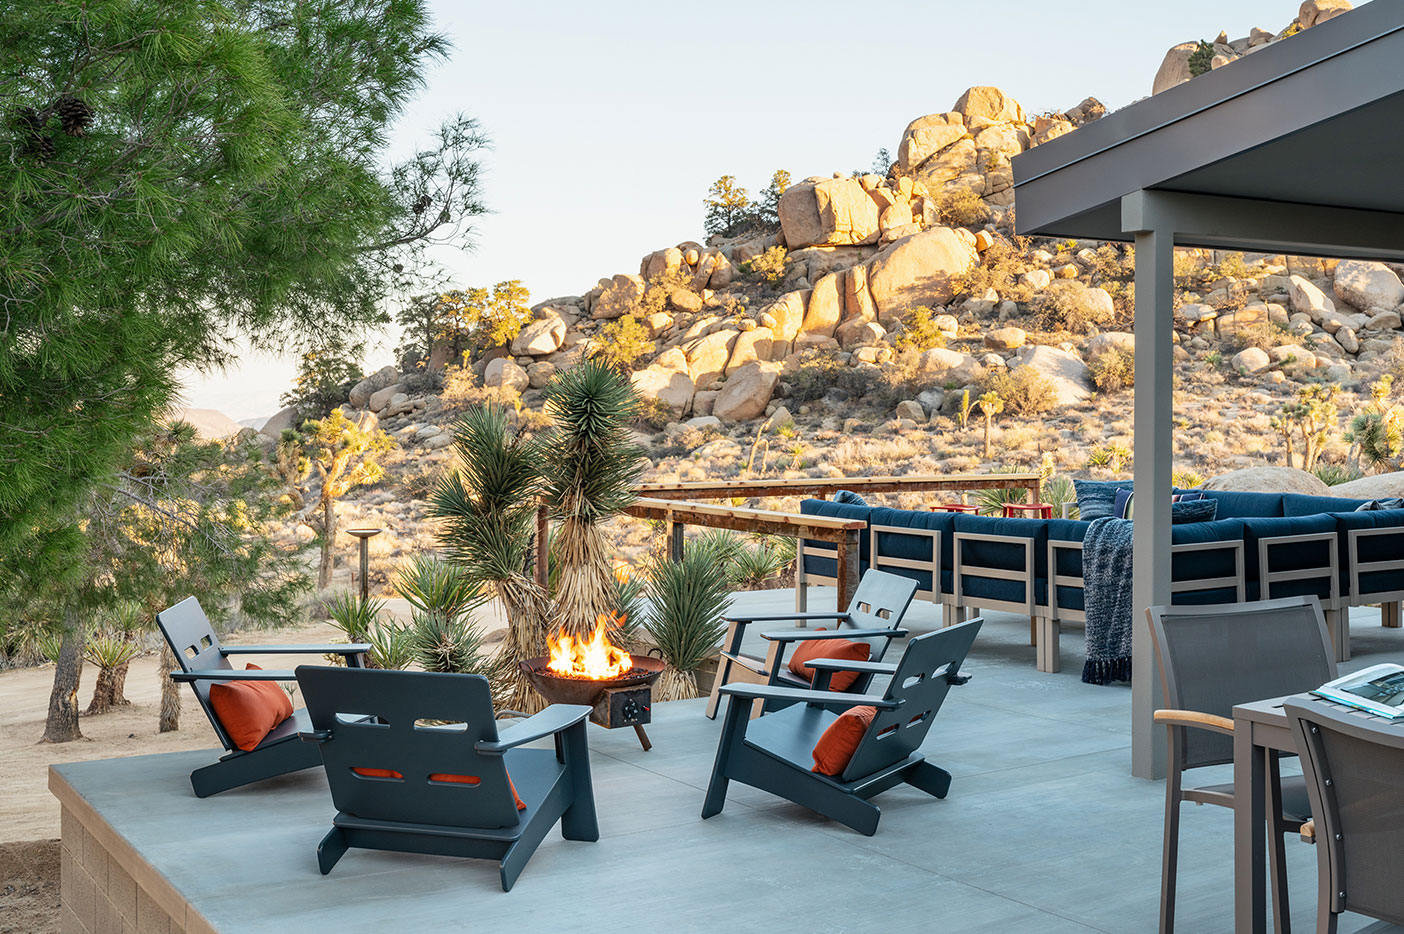 Concrete or Paver Patios - There is nothing more practical — and  beautiful (if correctly  conceived)  —  than a concrete or paver patio. They provide a year-round surface that is not impacted by rain. They also are easy to clean and they minimize the tracking of dirt into your home.